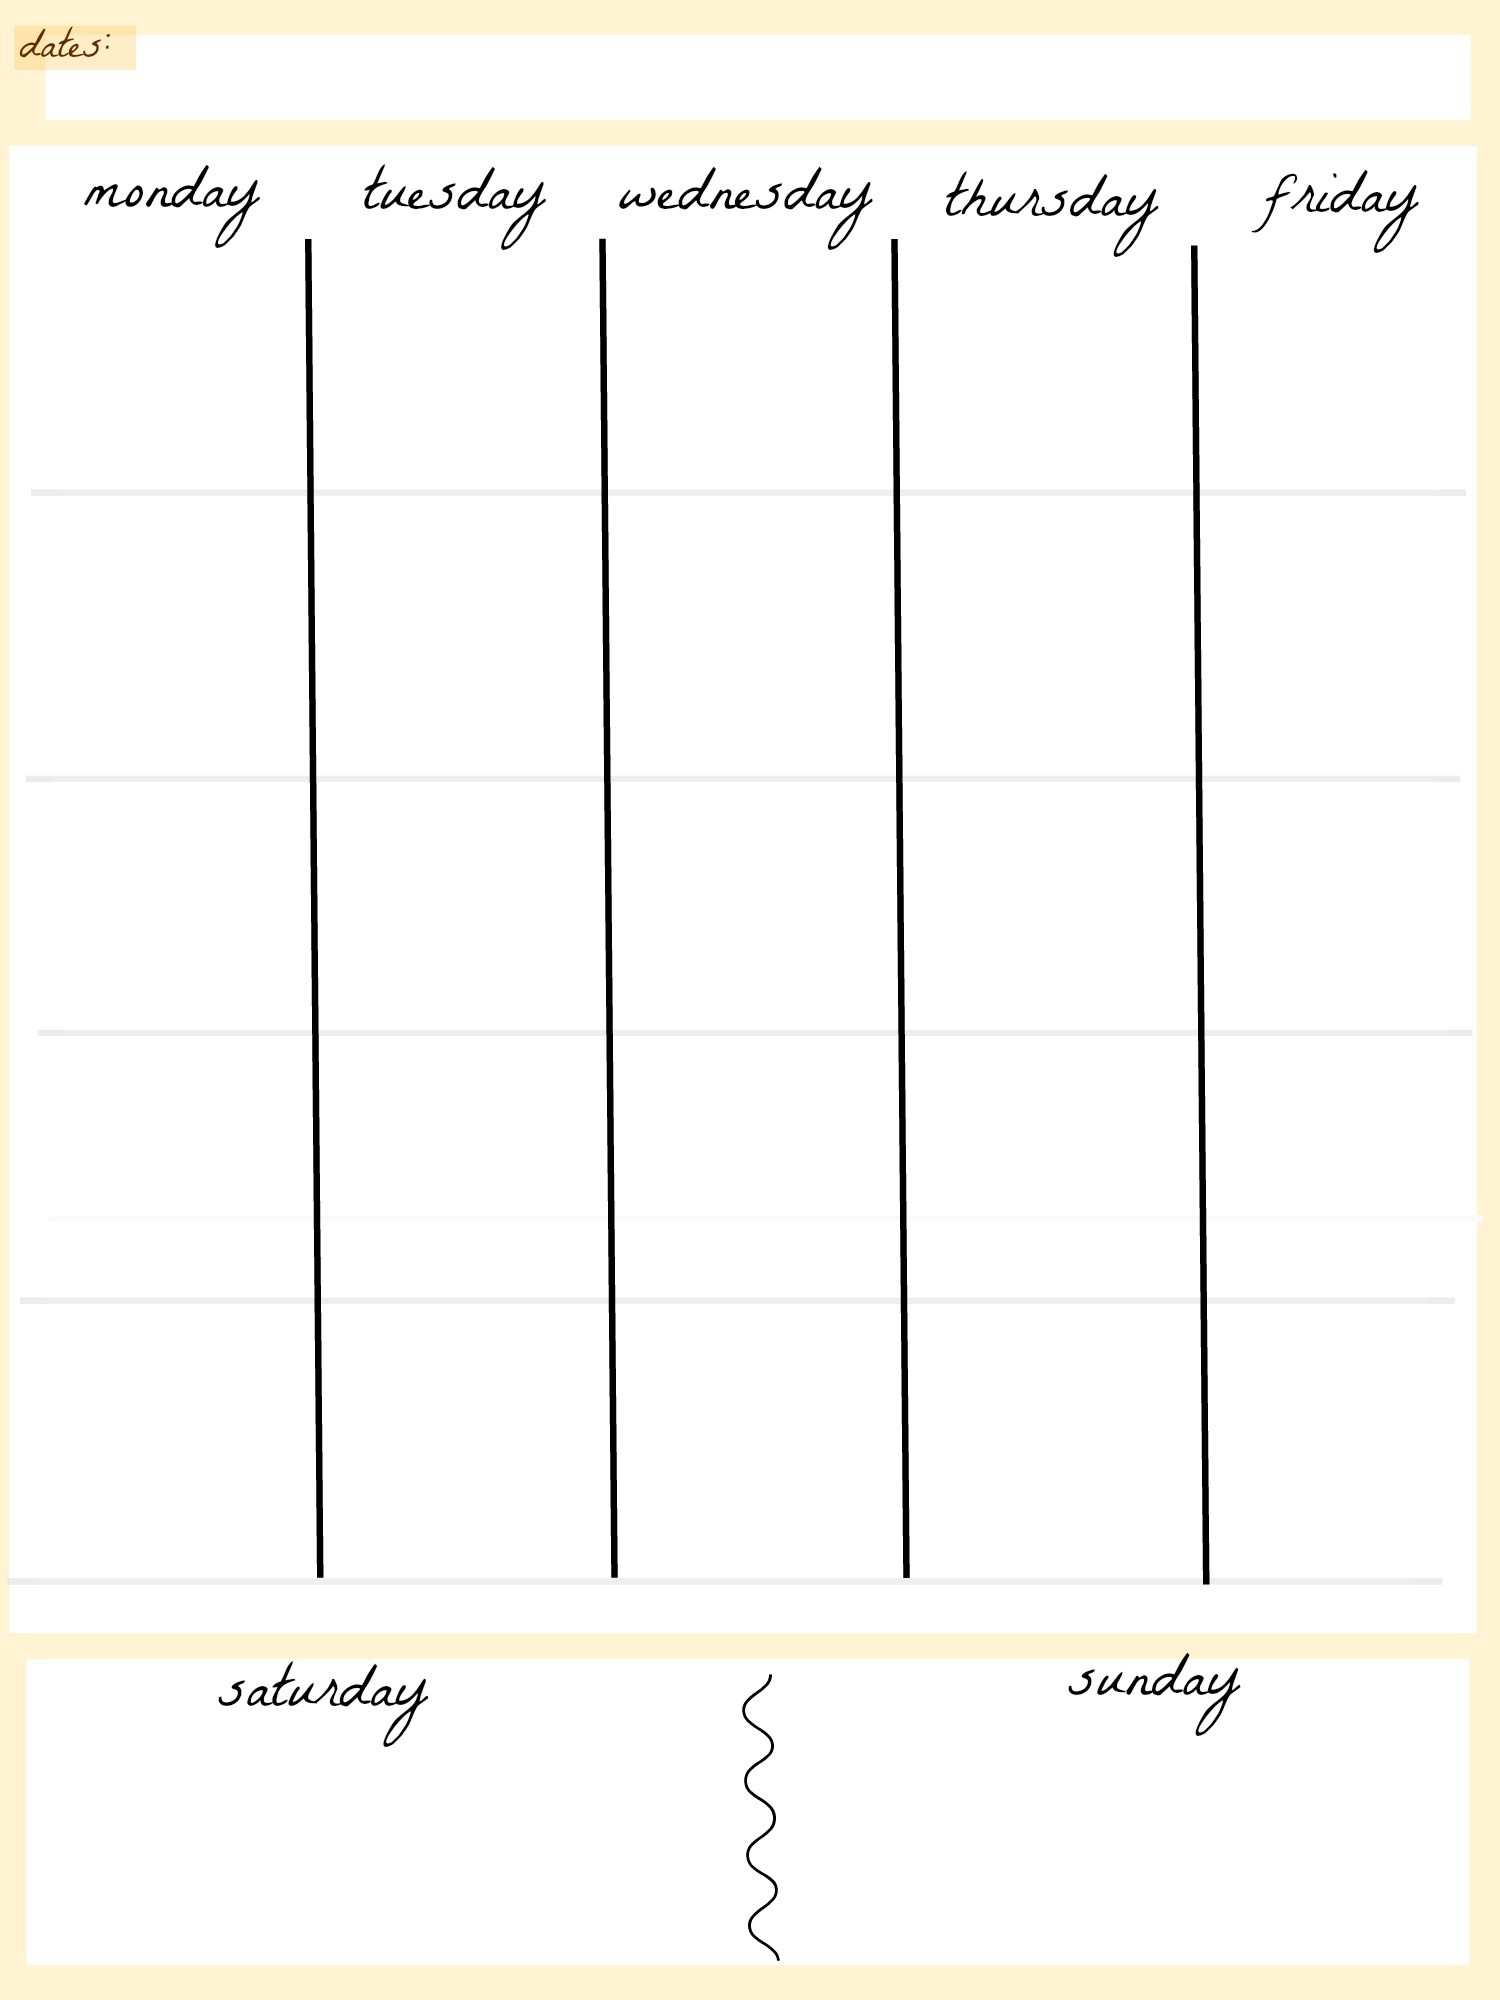 Blank Calendar Template 5 Day Week Weekly Calendar 5 Day Travel Cal1 with regard to 5 Day Calendar Template Free